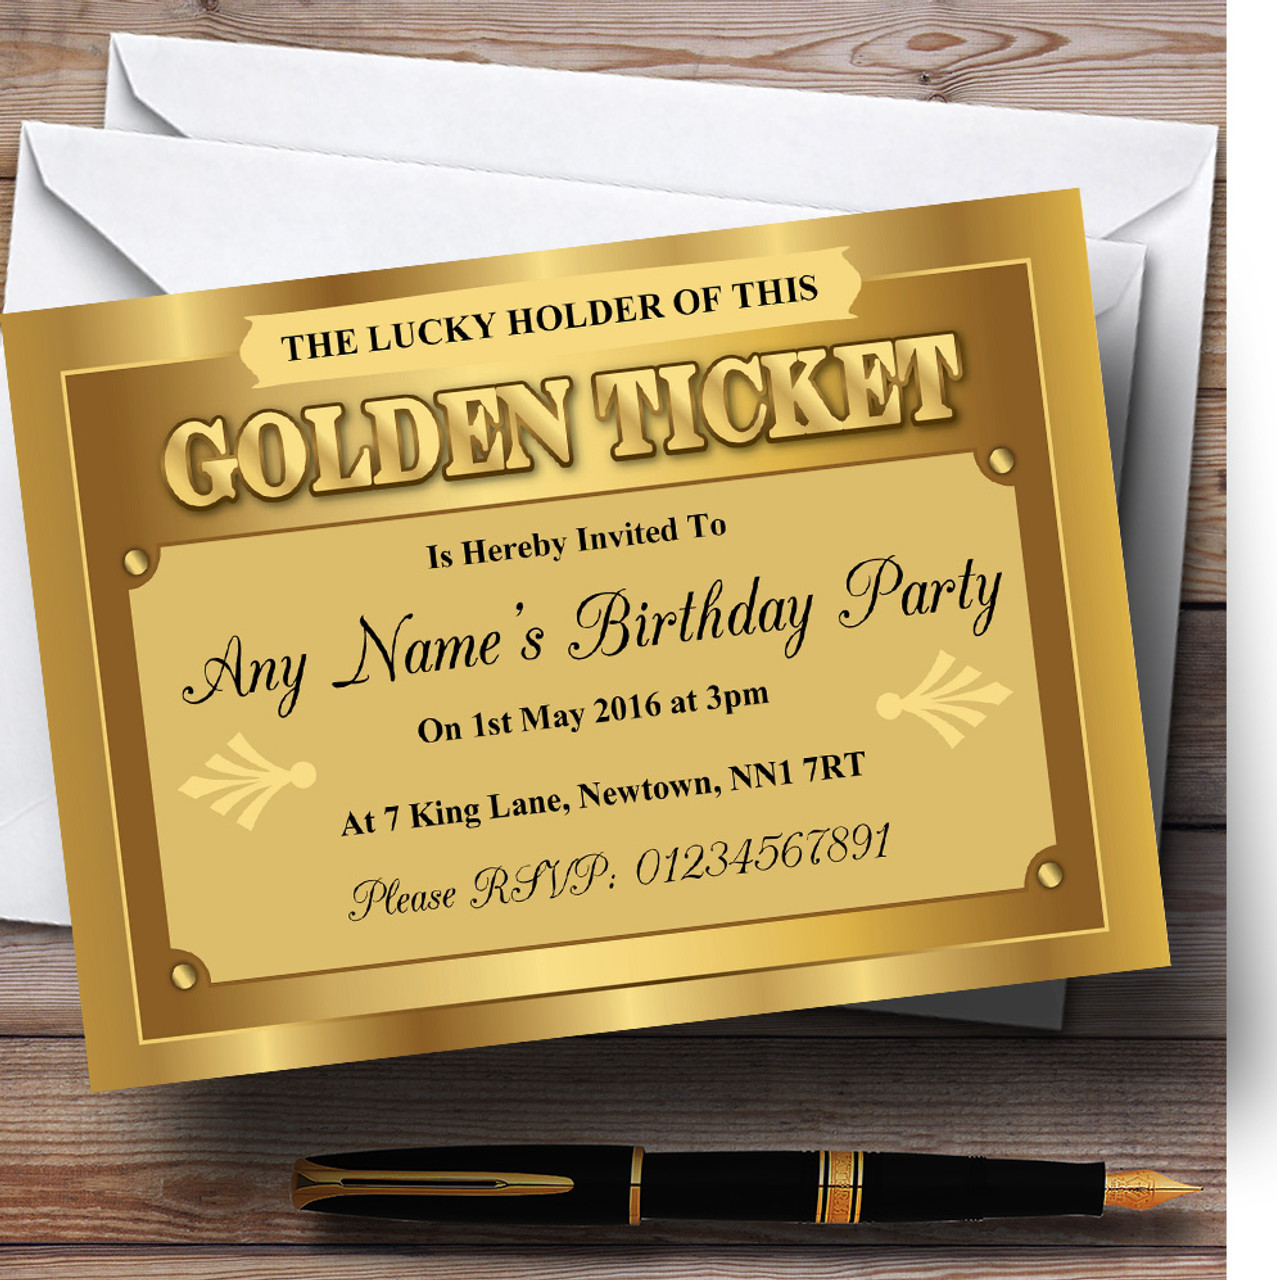 Golden Ticket Personalized Birthday Party Invitations - Red Heart Print